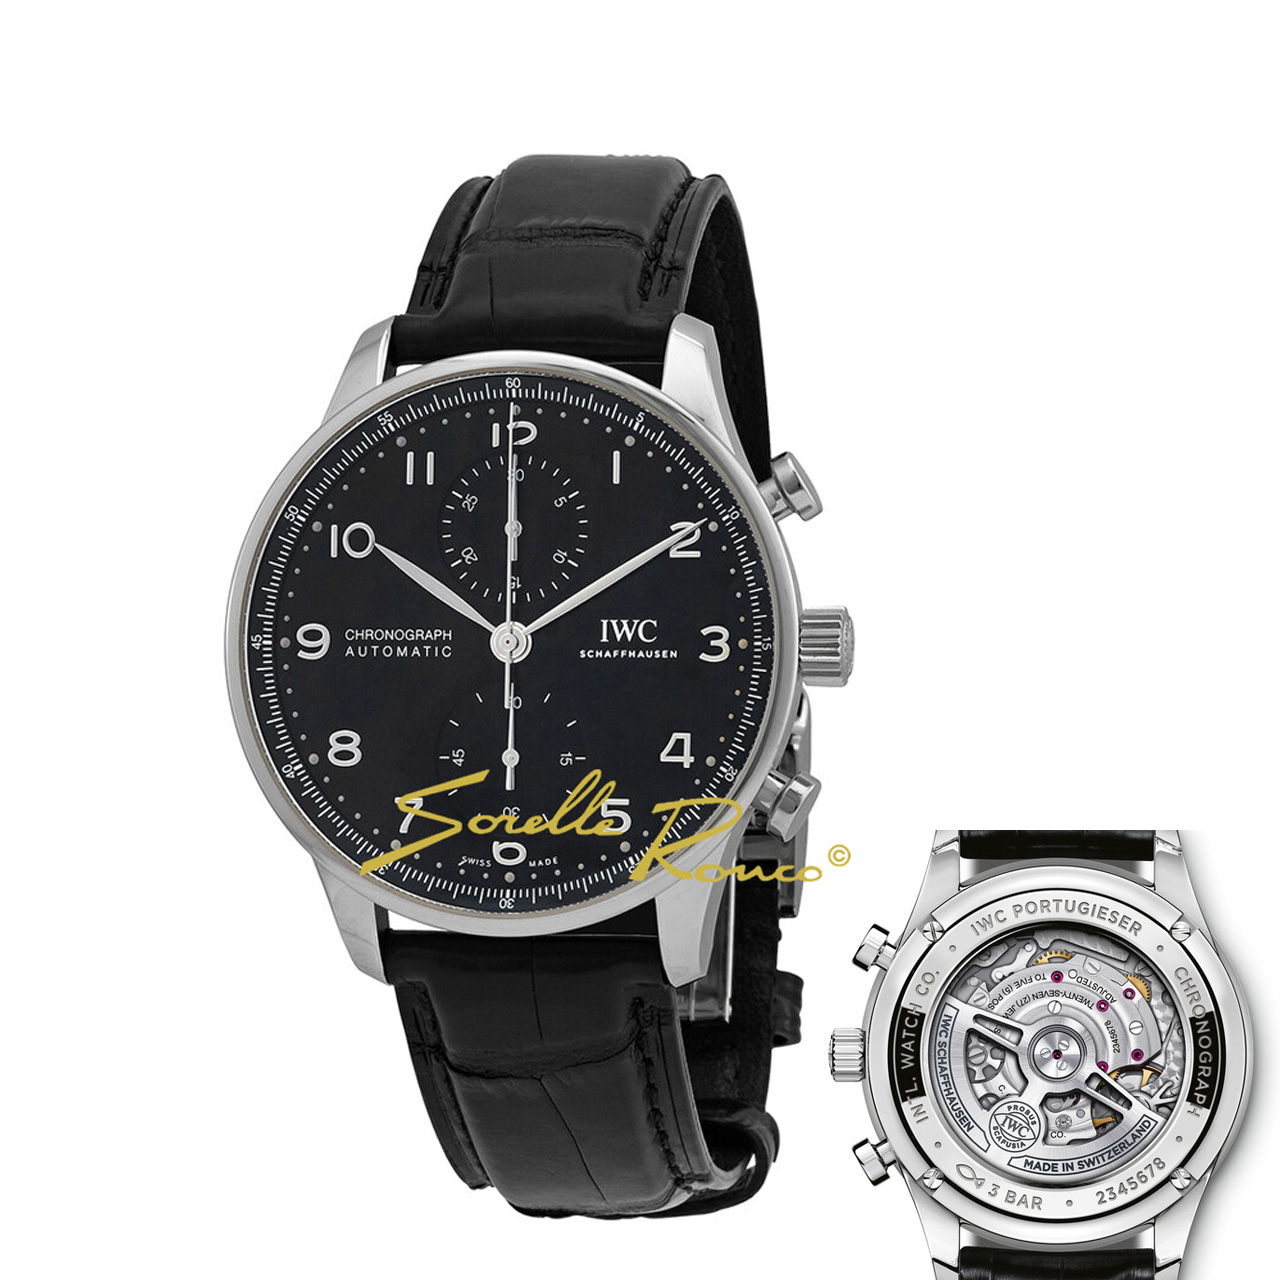 Portoghese Chrono Nero 41mm calibro MANIFATTURA